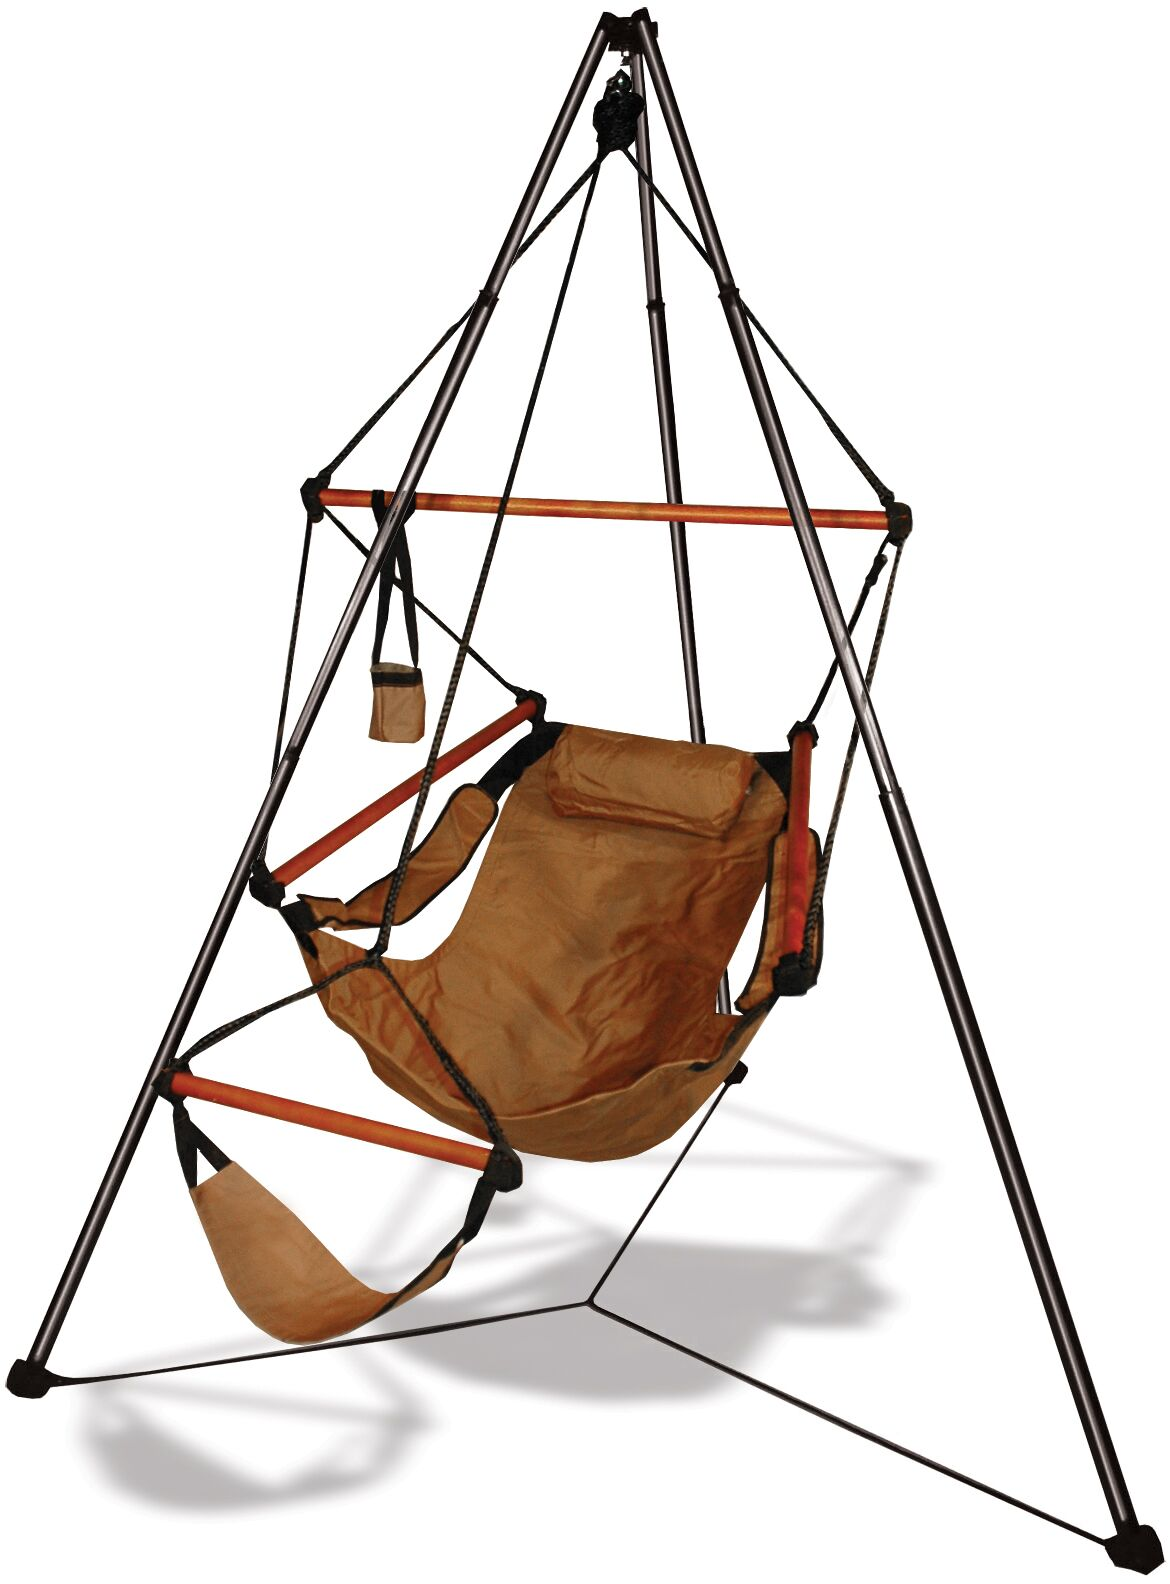 Polyester Chair Hammock with Stand Color: Natural Tan, Dowels: Wood